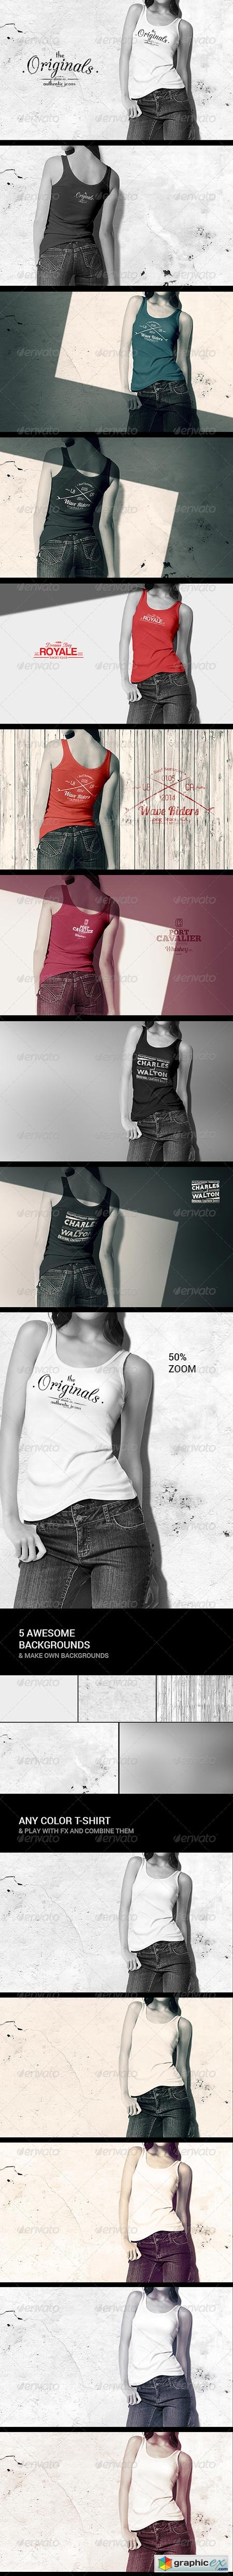 Women Tank Shirt Mock-up 8597690